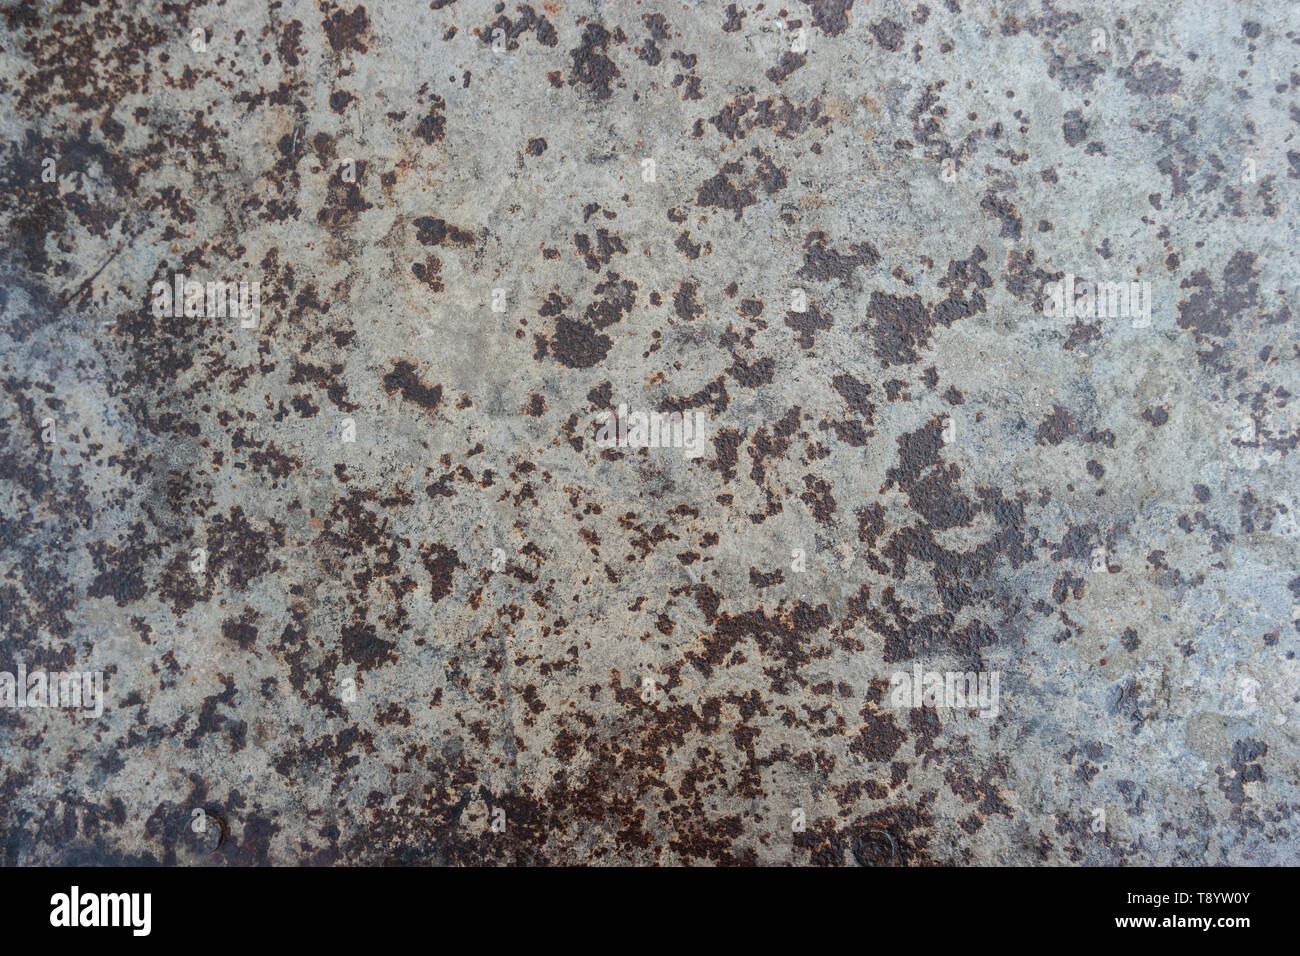 Polished metal surface with traces of corrosion. - Stock Image